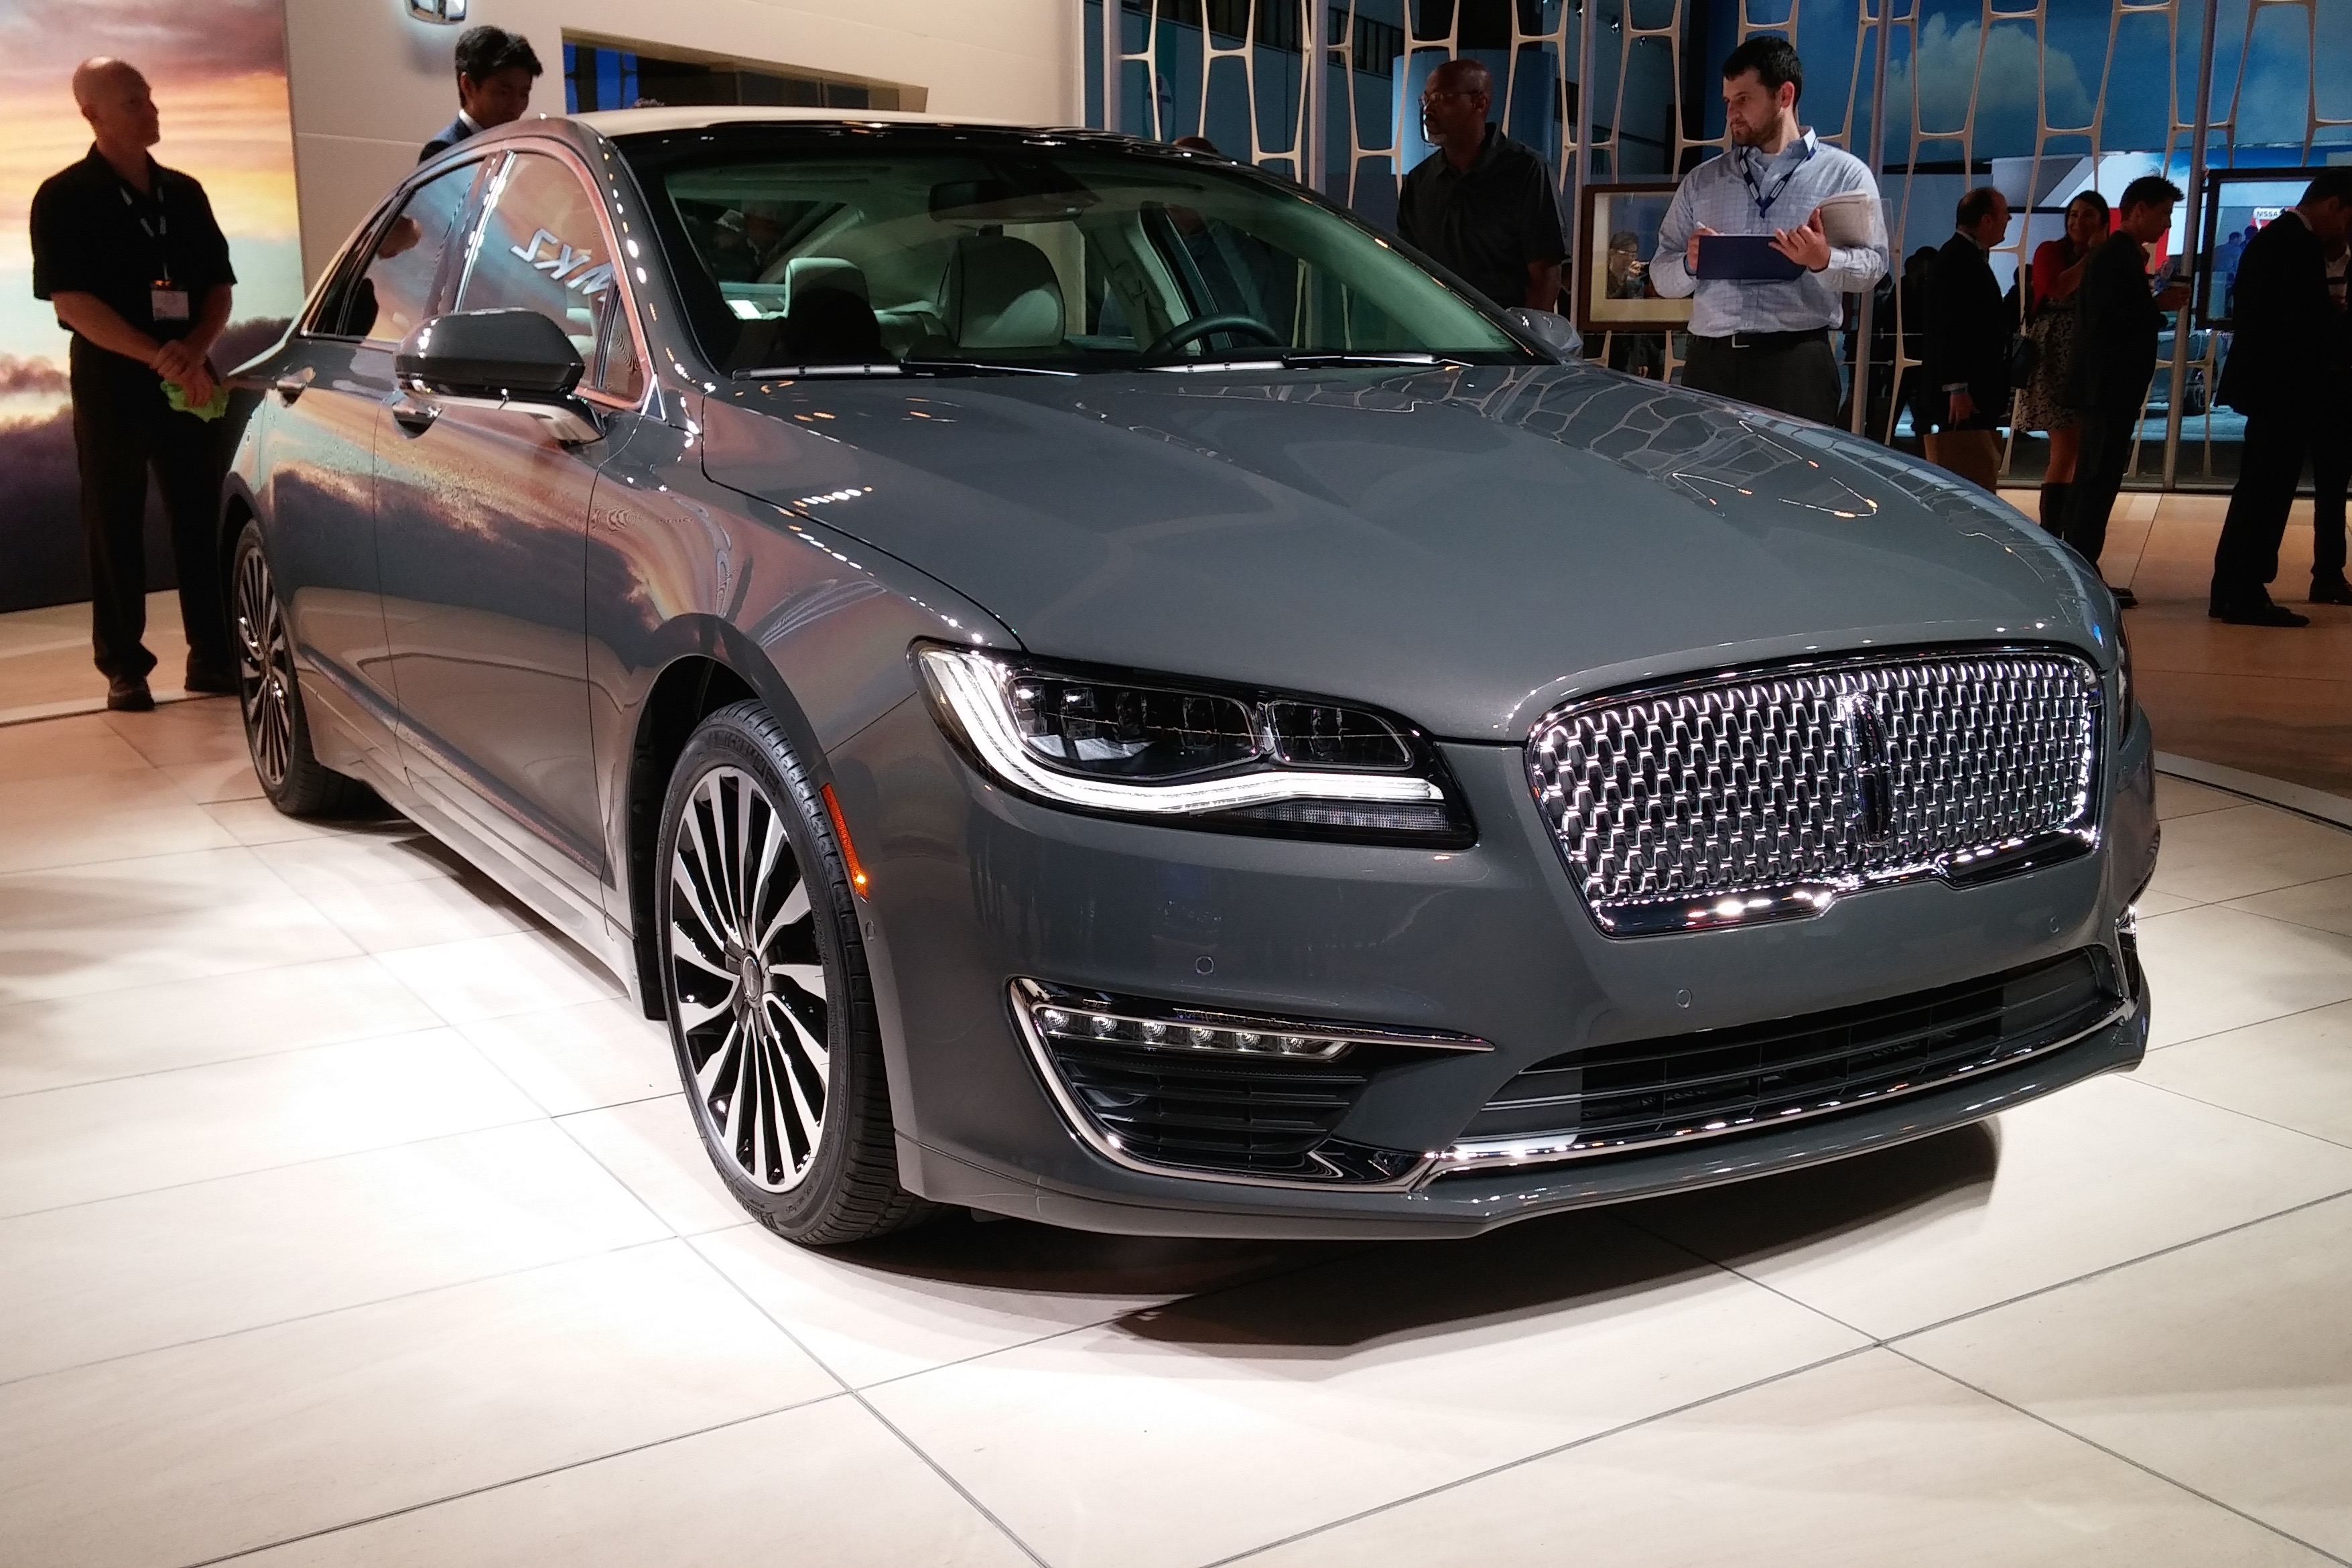 2015 la auto show 2017 mkz shows us the new face of lincoln again. Black Bedroom Furniture Sets. Home Design Ideas